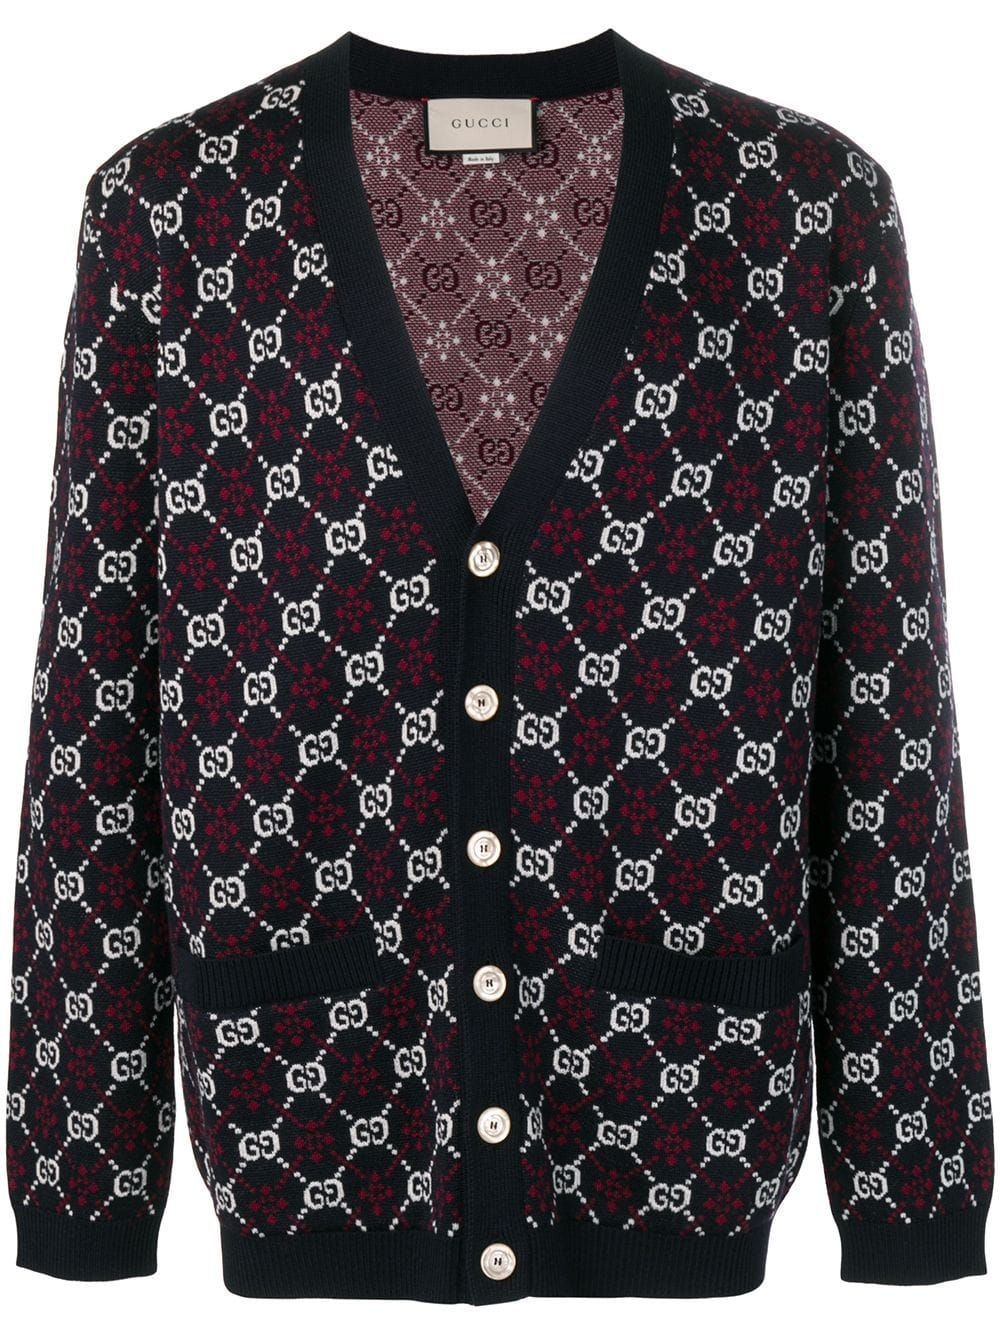 2ac5e454d32 Gucci GG Motif Cardigan in 2019   Products   Sweater outfits, Shawl ...